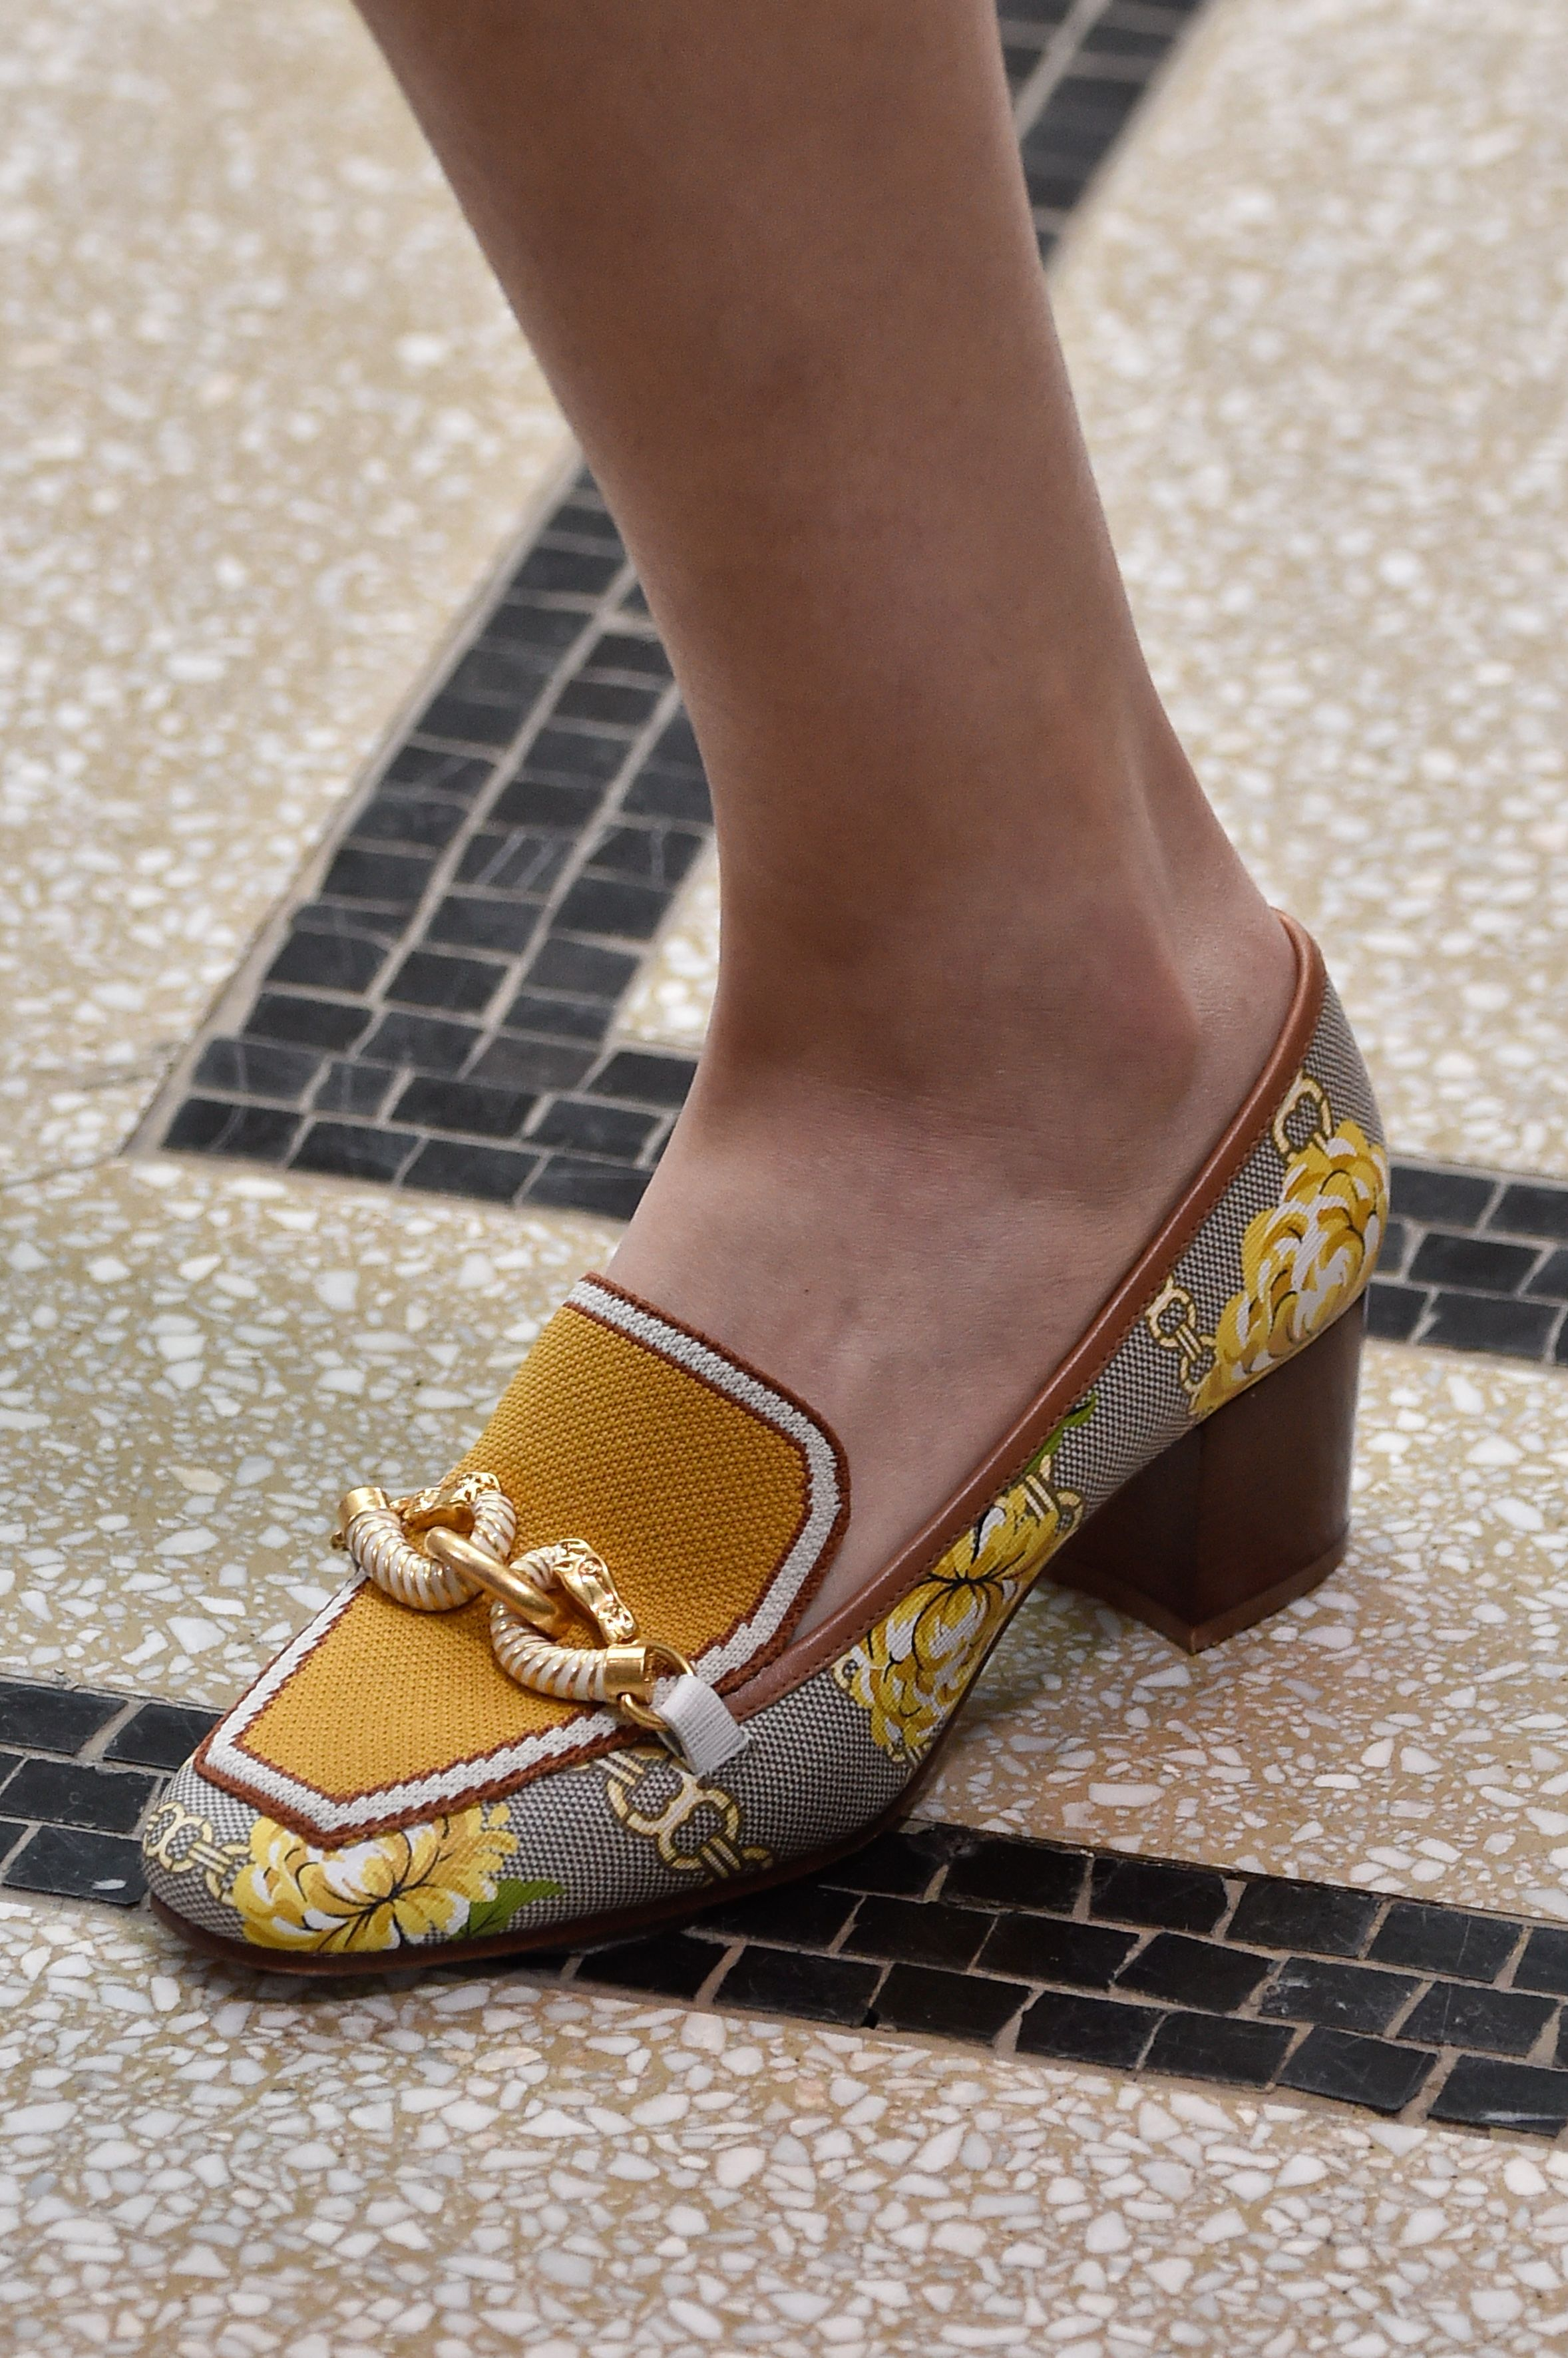 Spring Shoe Trends 2020.The Biggest Shoe Trends Of Spring 2020